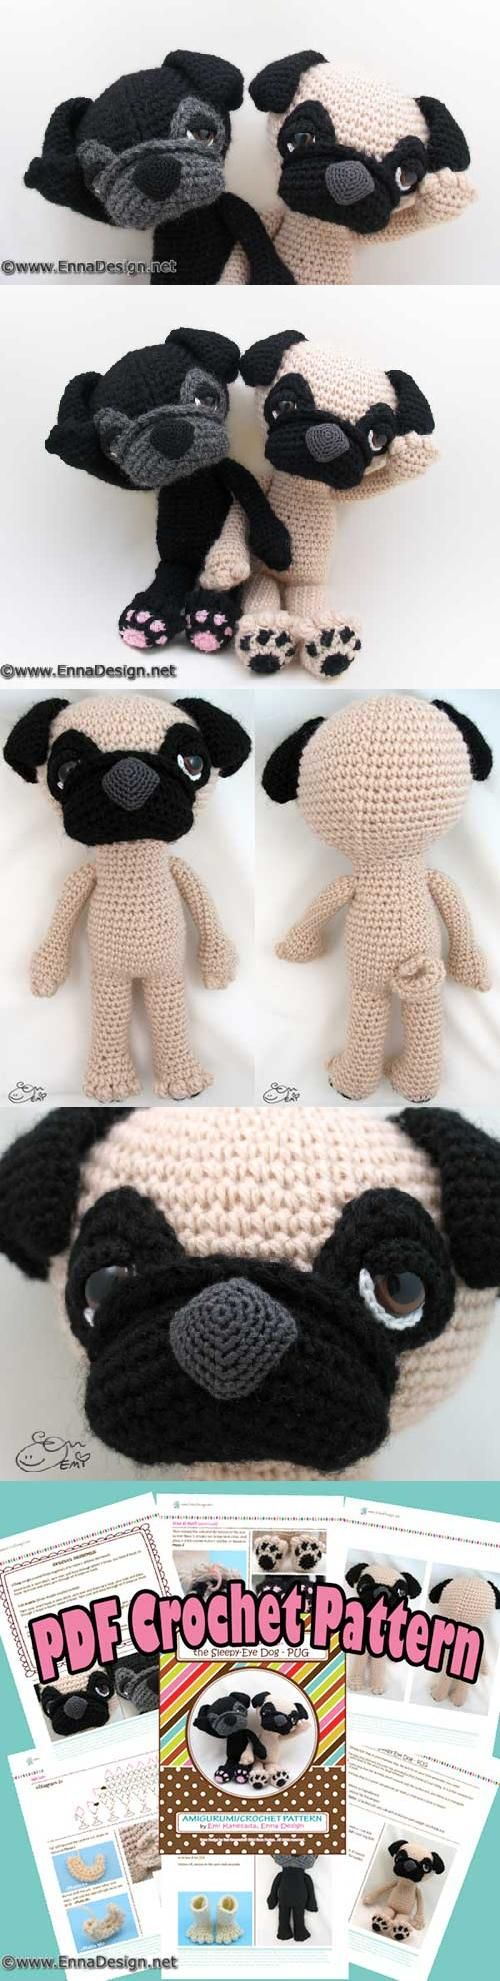 Free Crochet Pattern For Pug Dog : Sleepy-eyed pug amigurumi pattern by Emi Kanesada (Enna ...